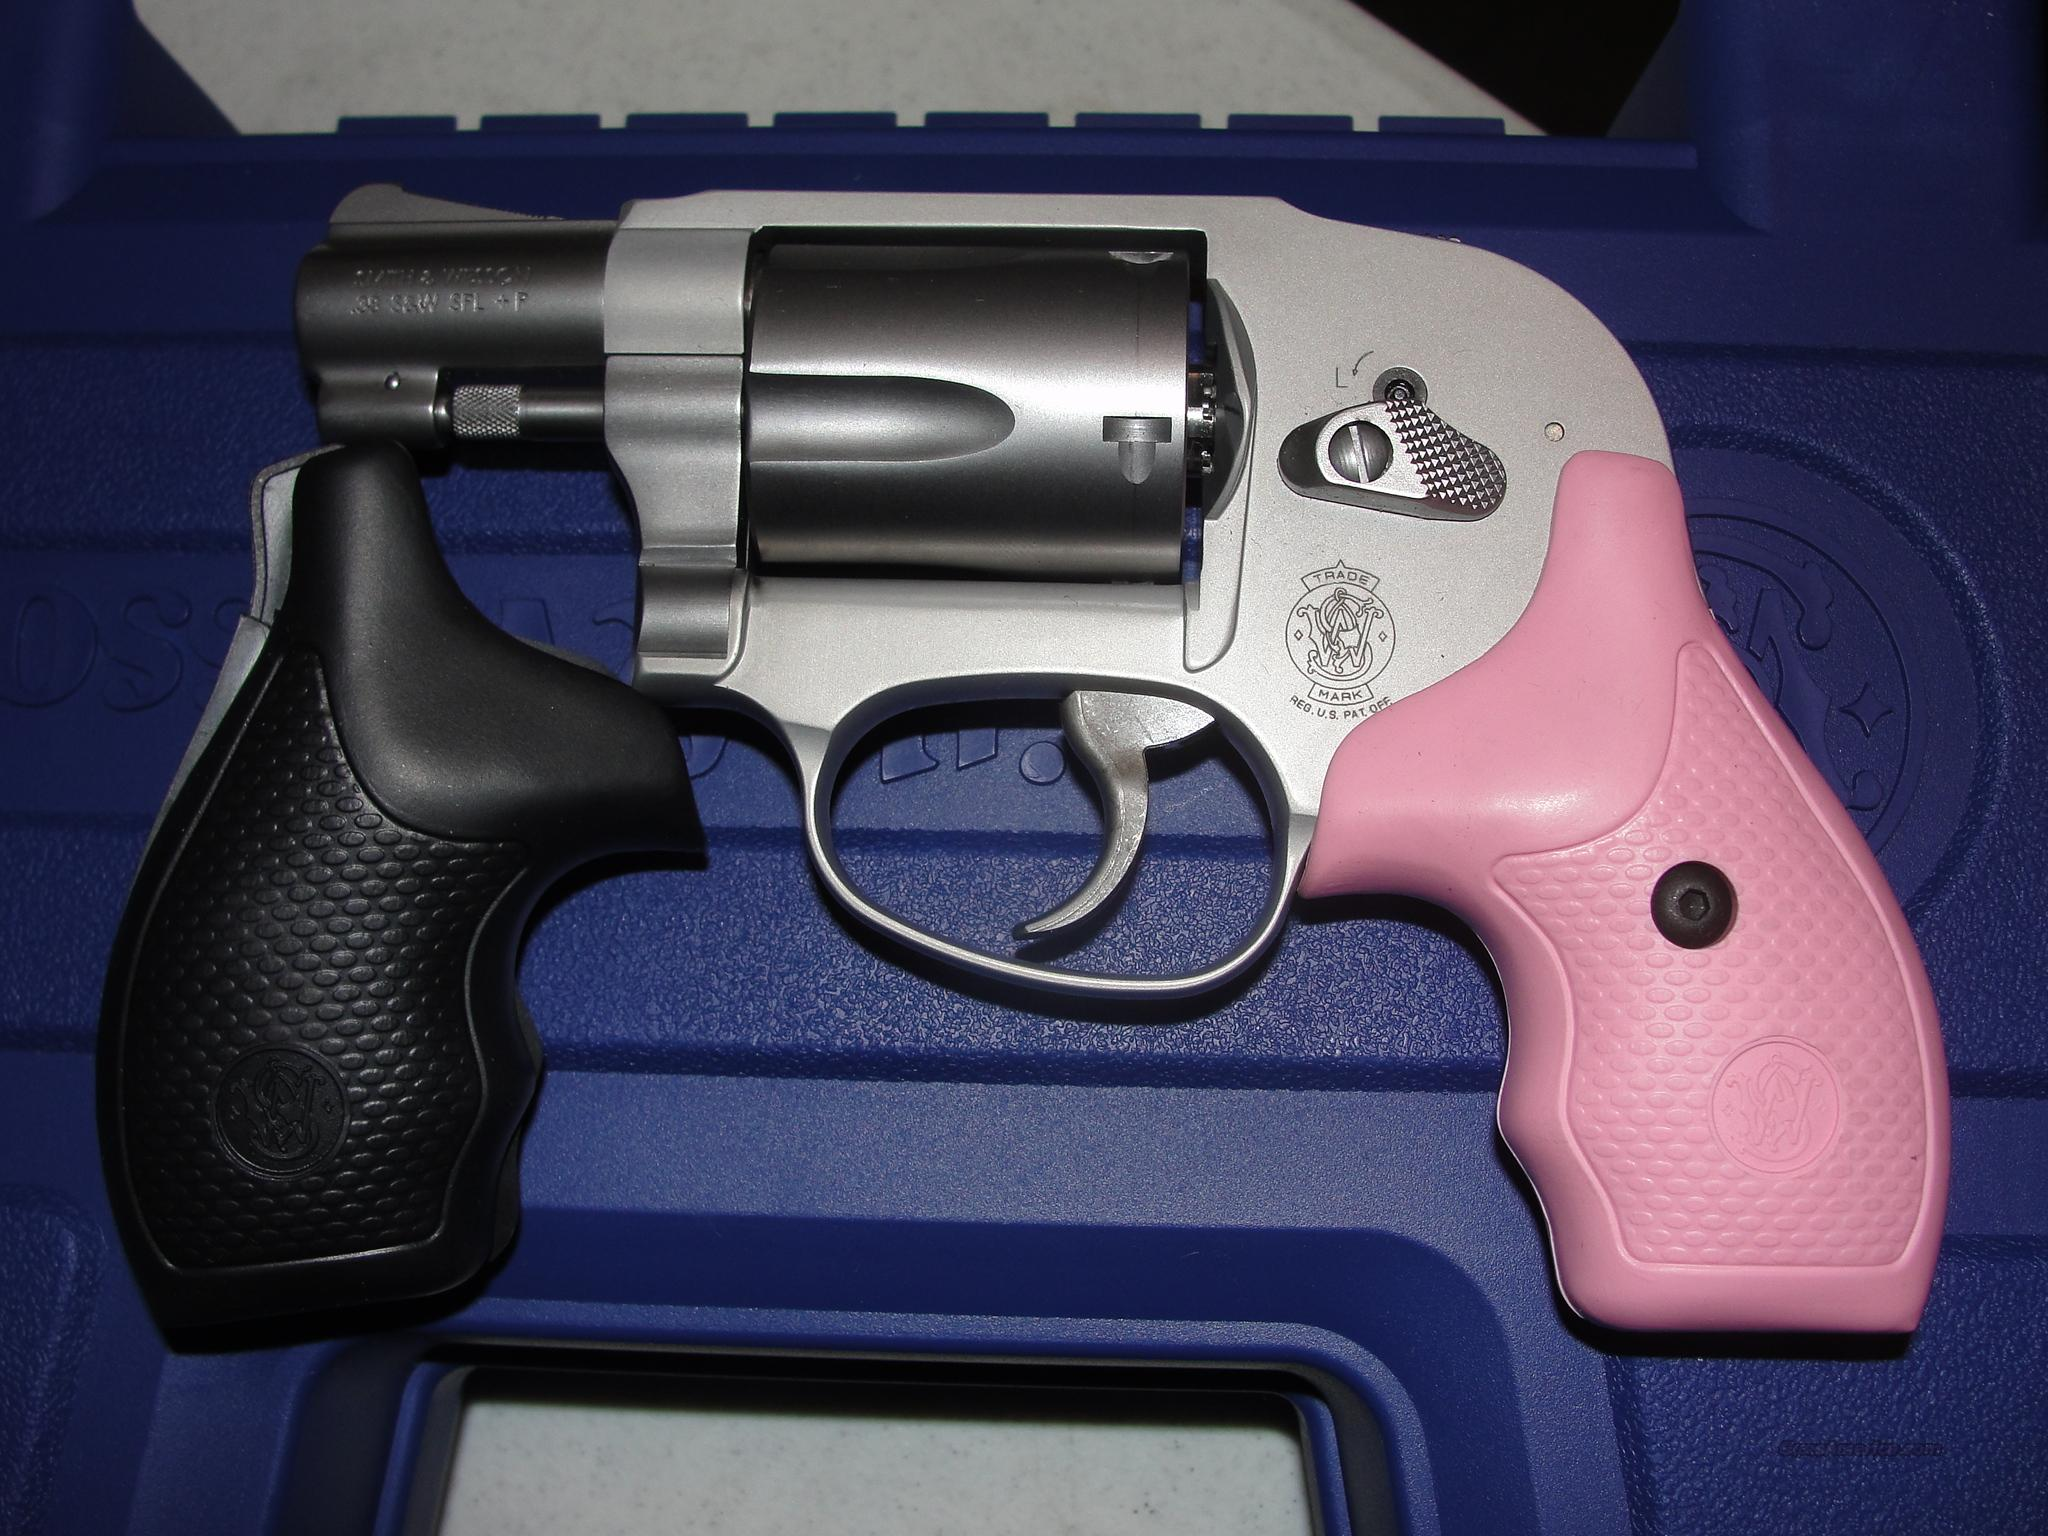 S&W M638 38 1 7/8 PINK & BLACK GRIPS SS   Guns > Pistols > Smith & Wesson Revolvers > Pocket Pistols